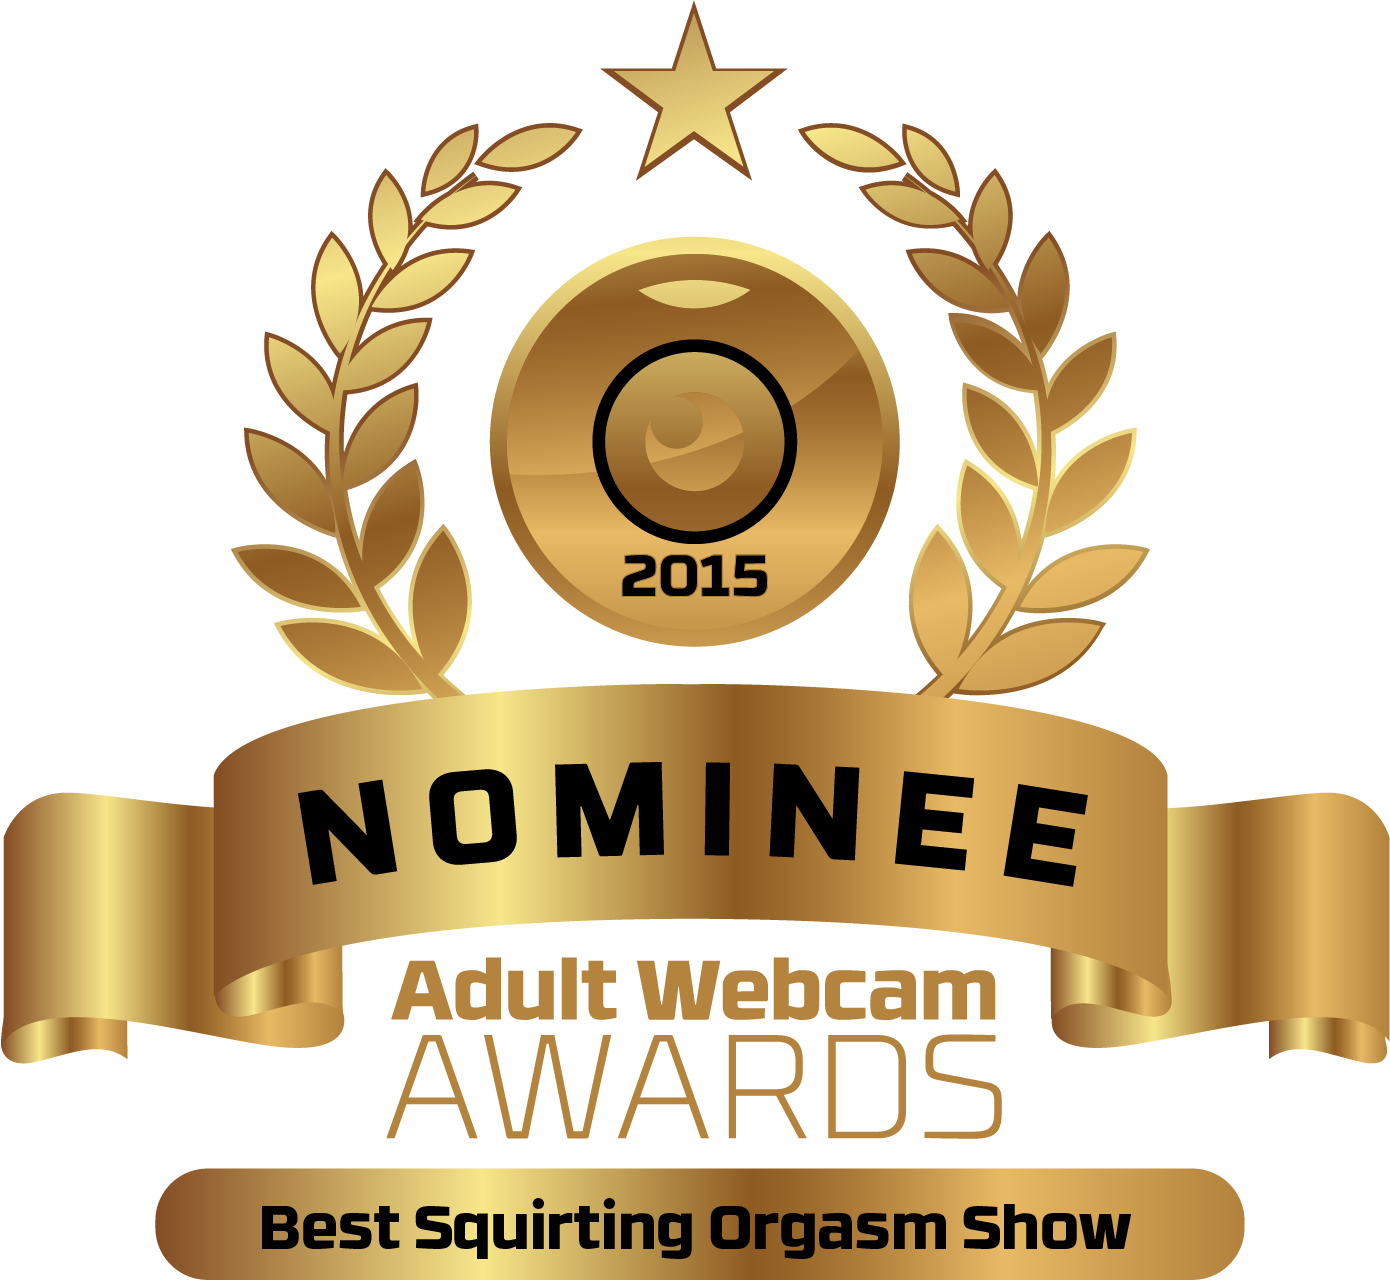 Best squirting orgasm show nominee